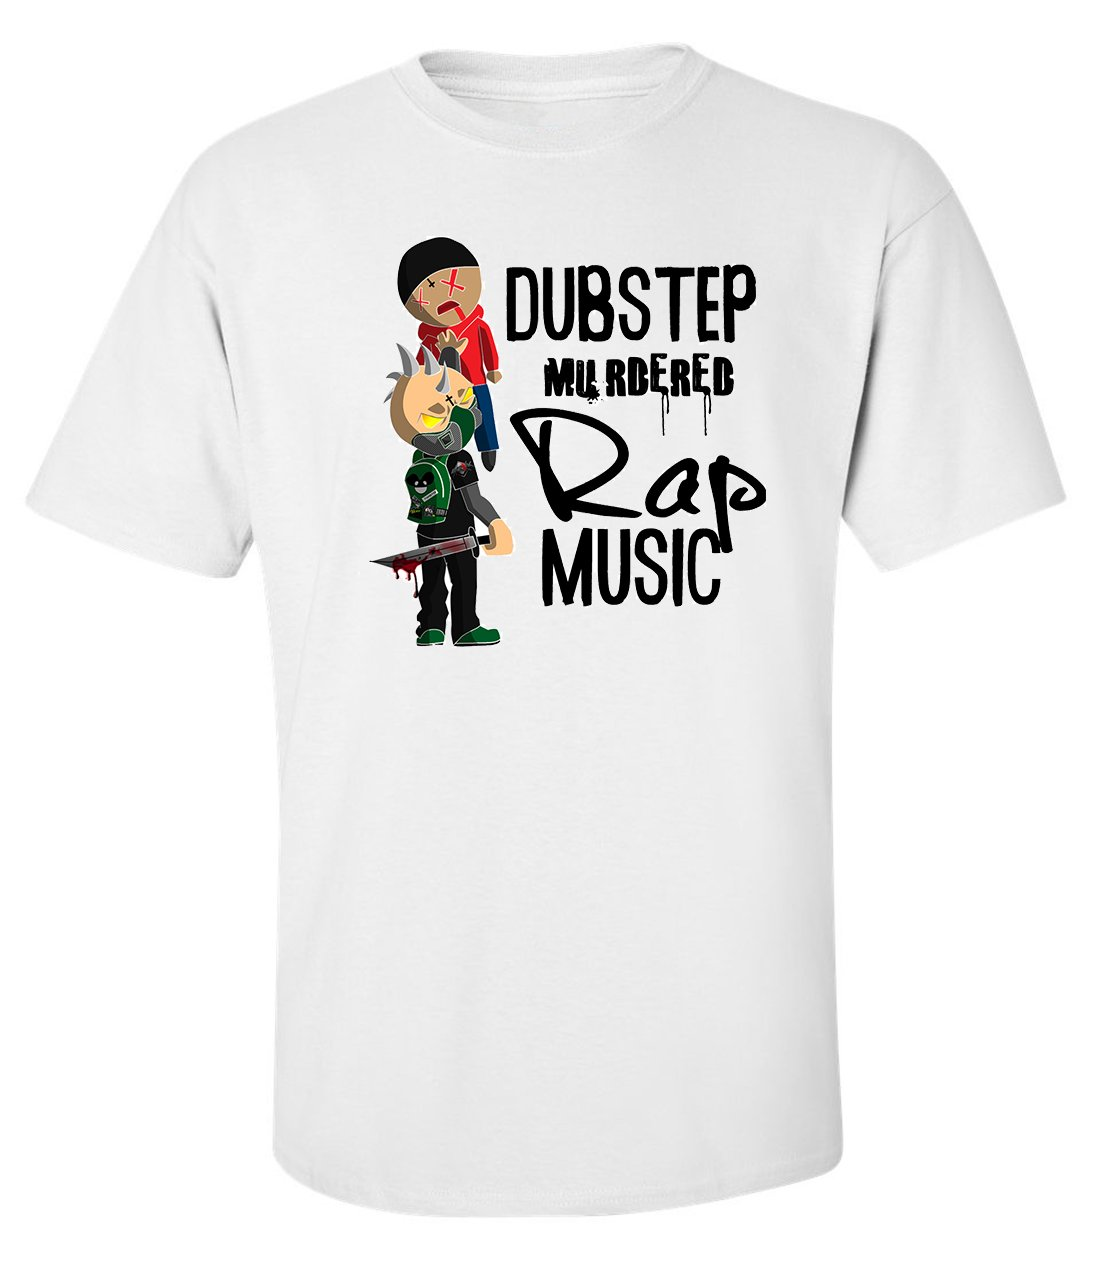 Dubstep murdered rap music men printed white cotton t-shirt size XL